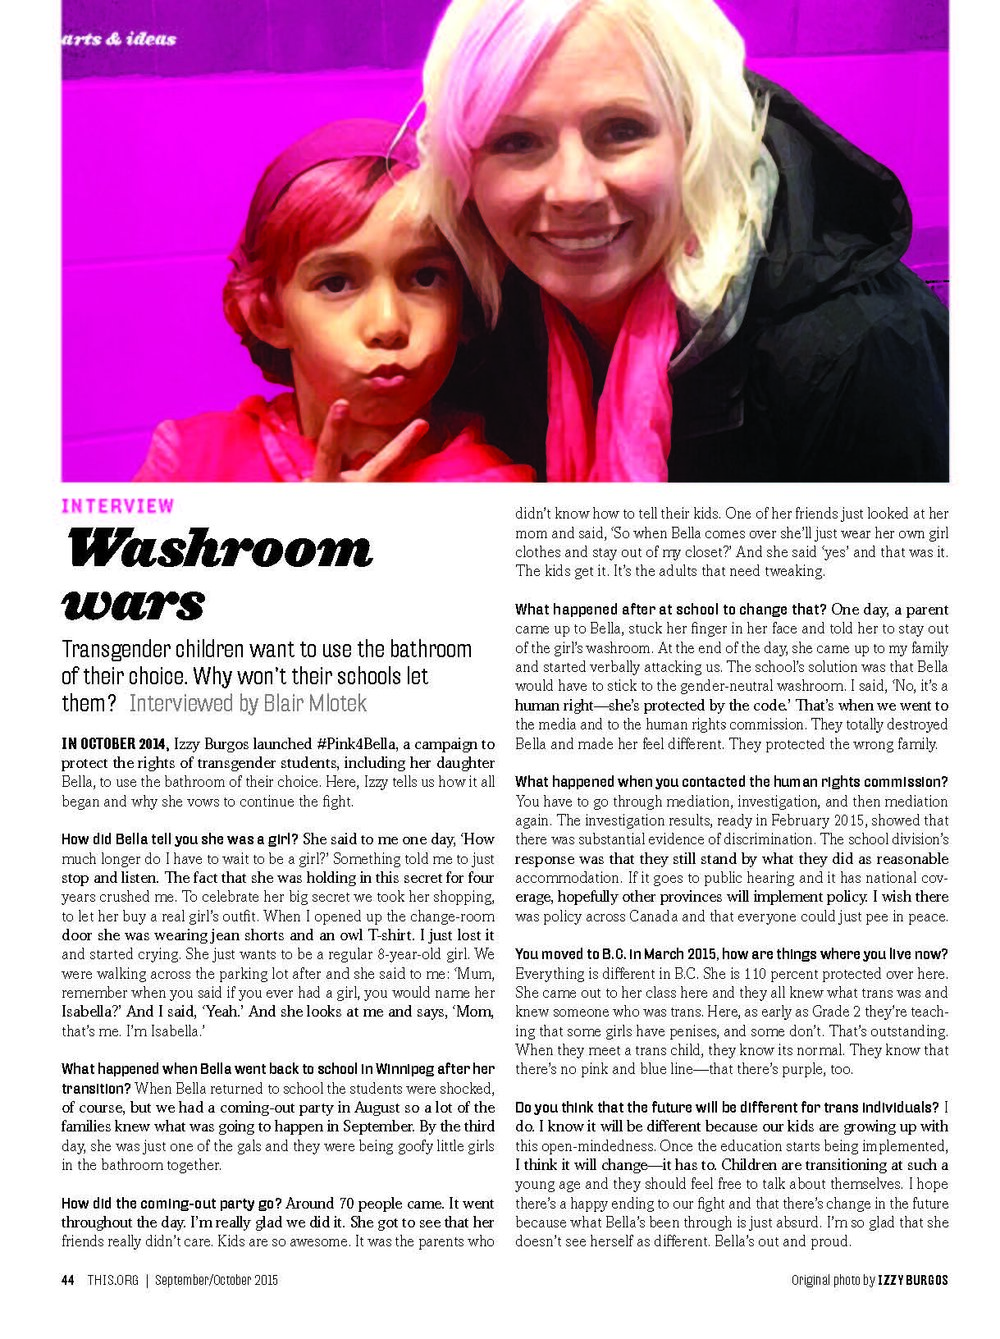 This Magazine - Washroom Wars: In conversation with Izzy Burgos